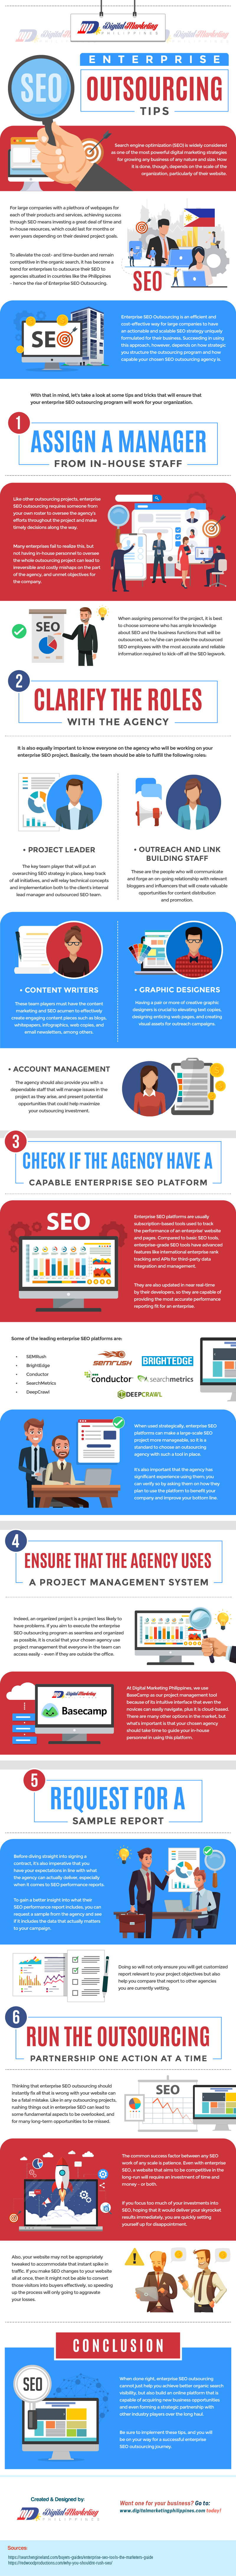 Enterprise SEO Outsourcing Tips [Infographic]